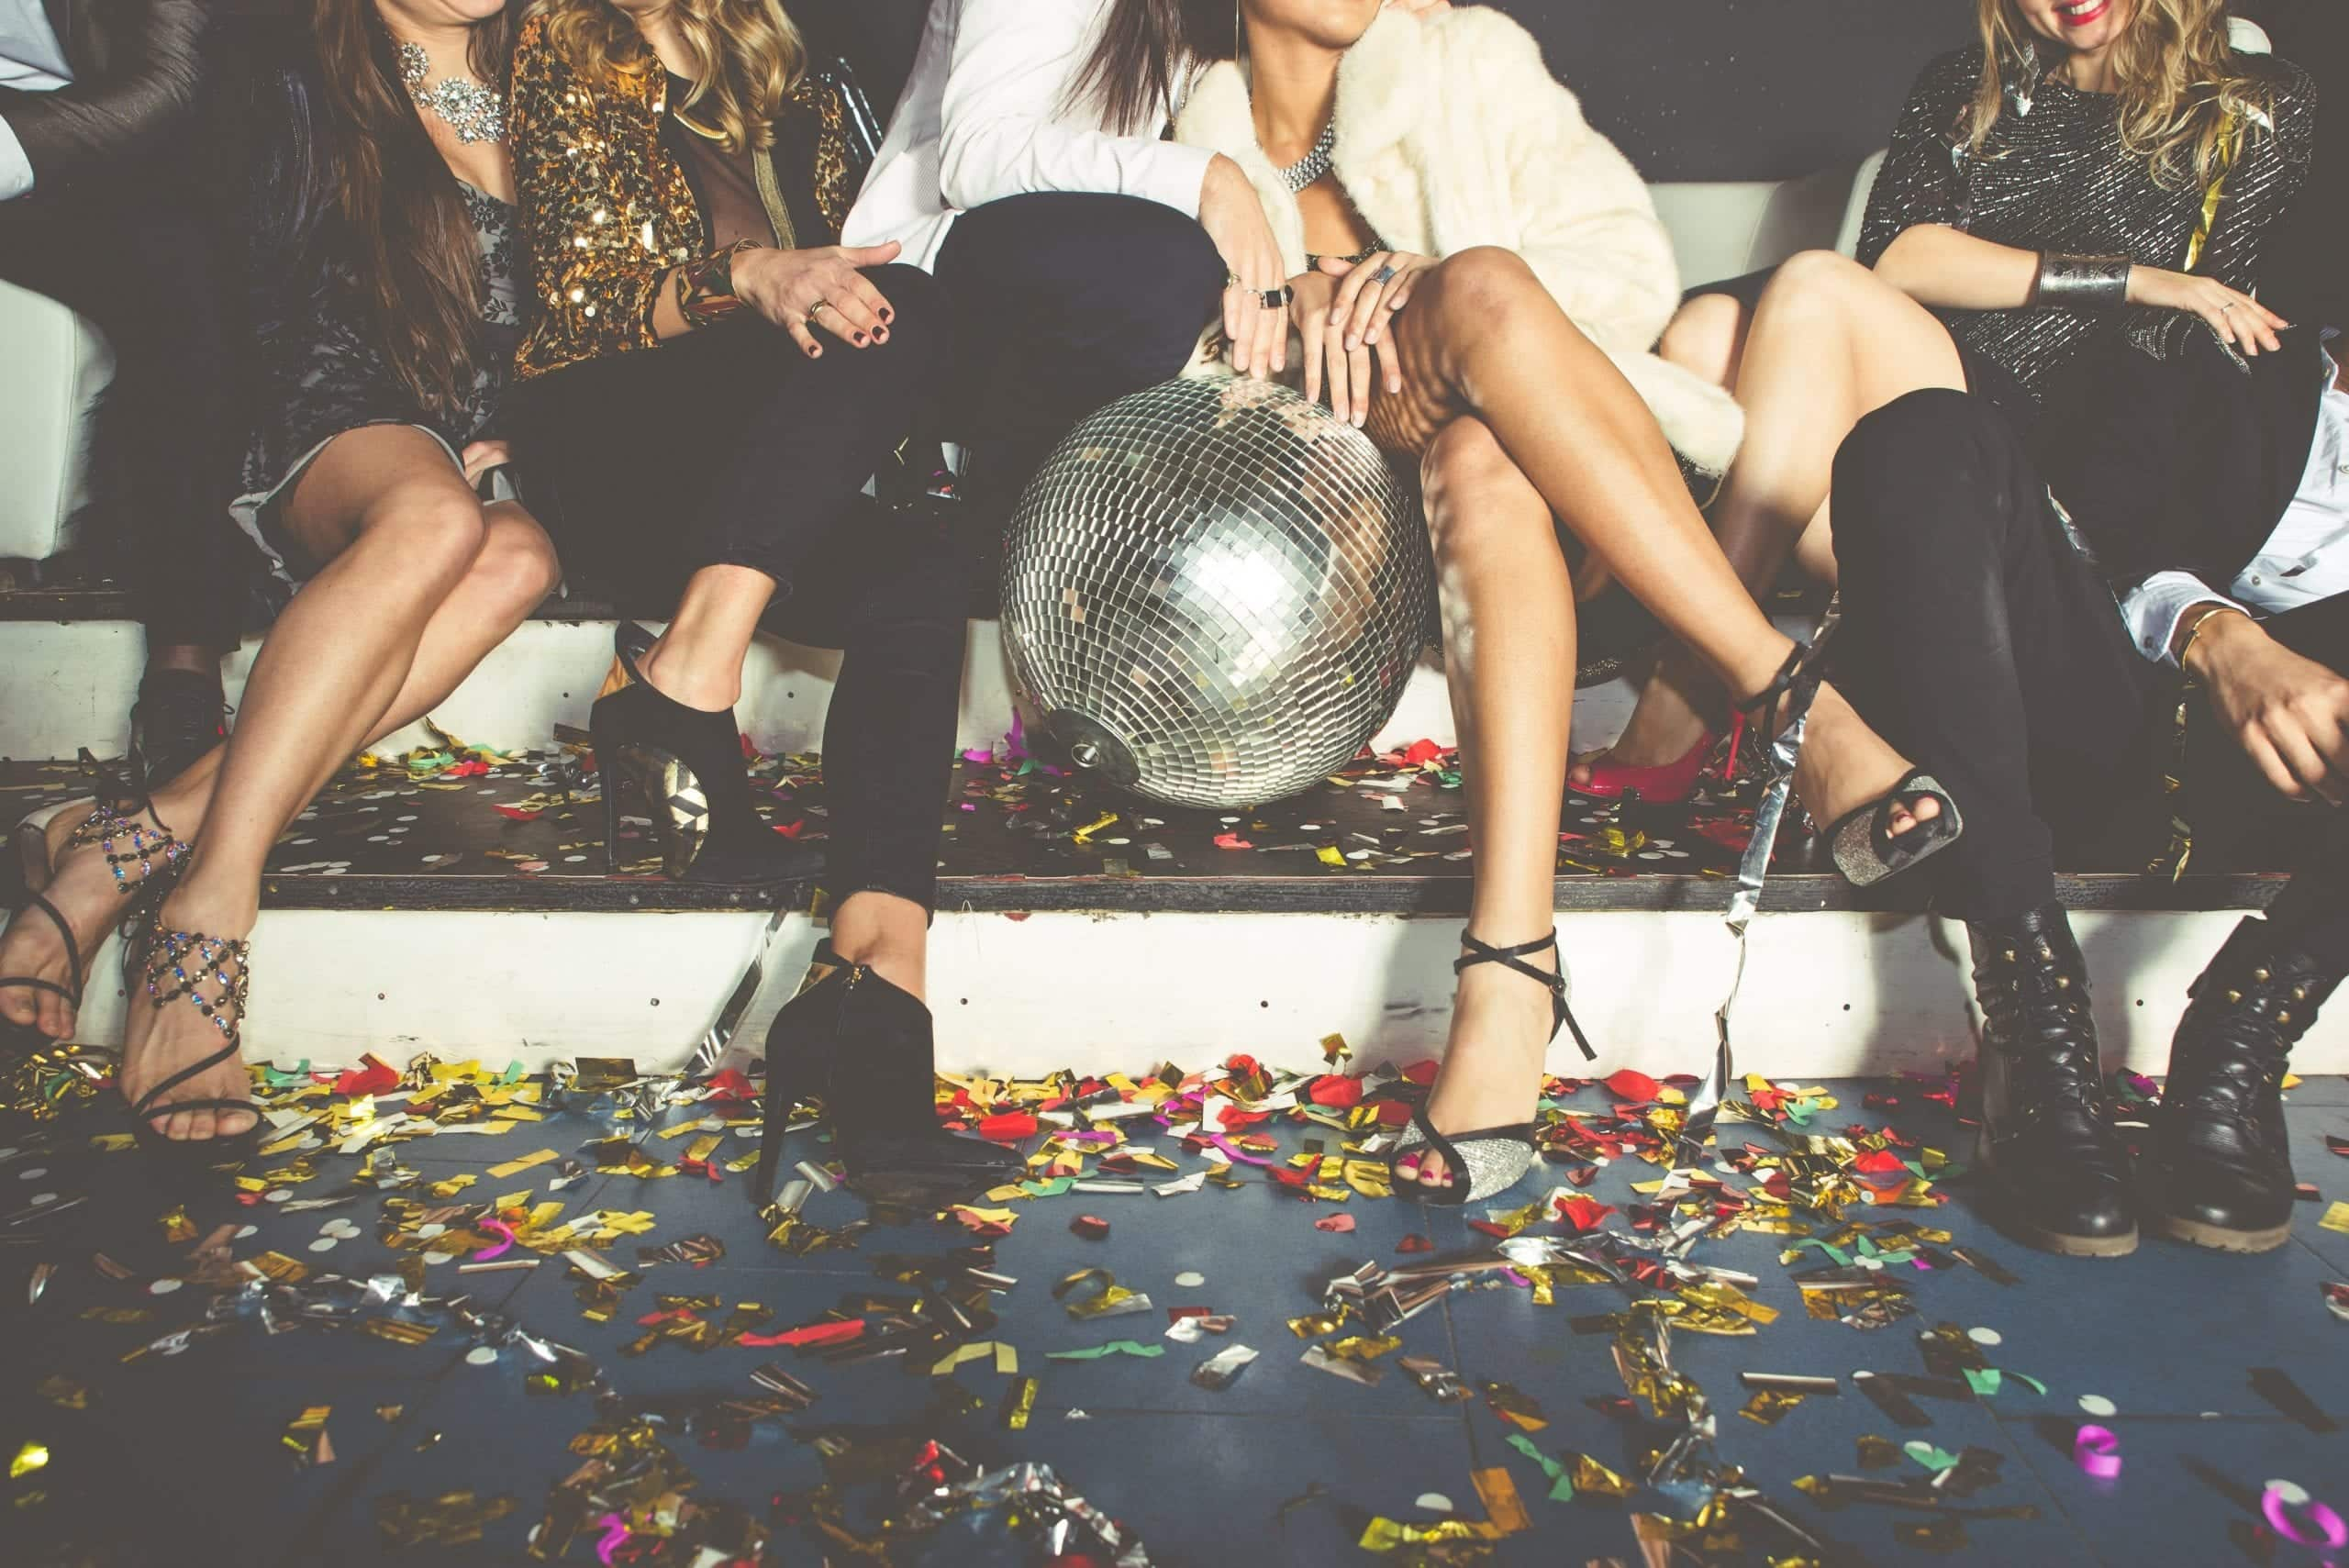 Party Culture addiction or fun